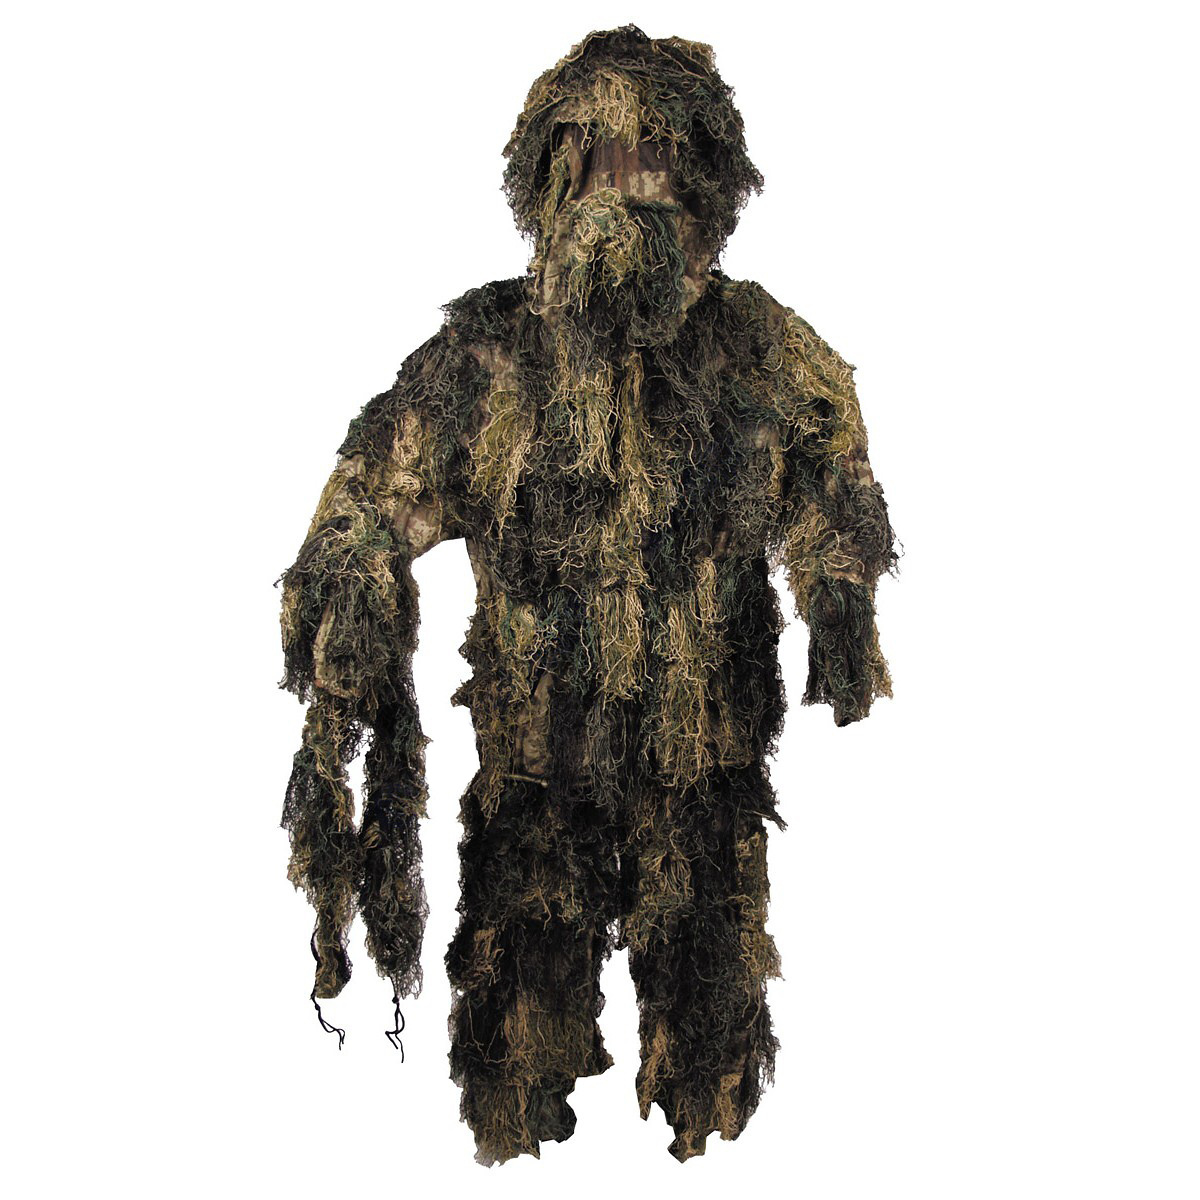 MFH 4-piece camouflage suit Ghillie - Woodland